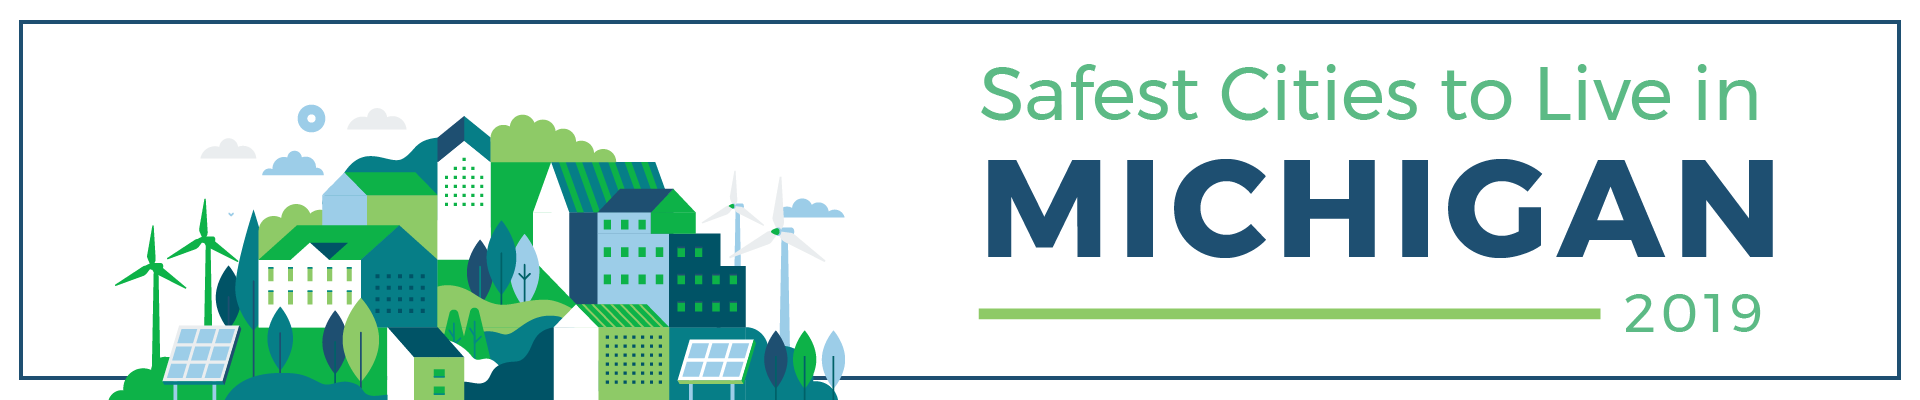 header - safest_cities_michigan_2019